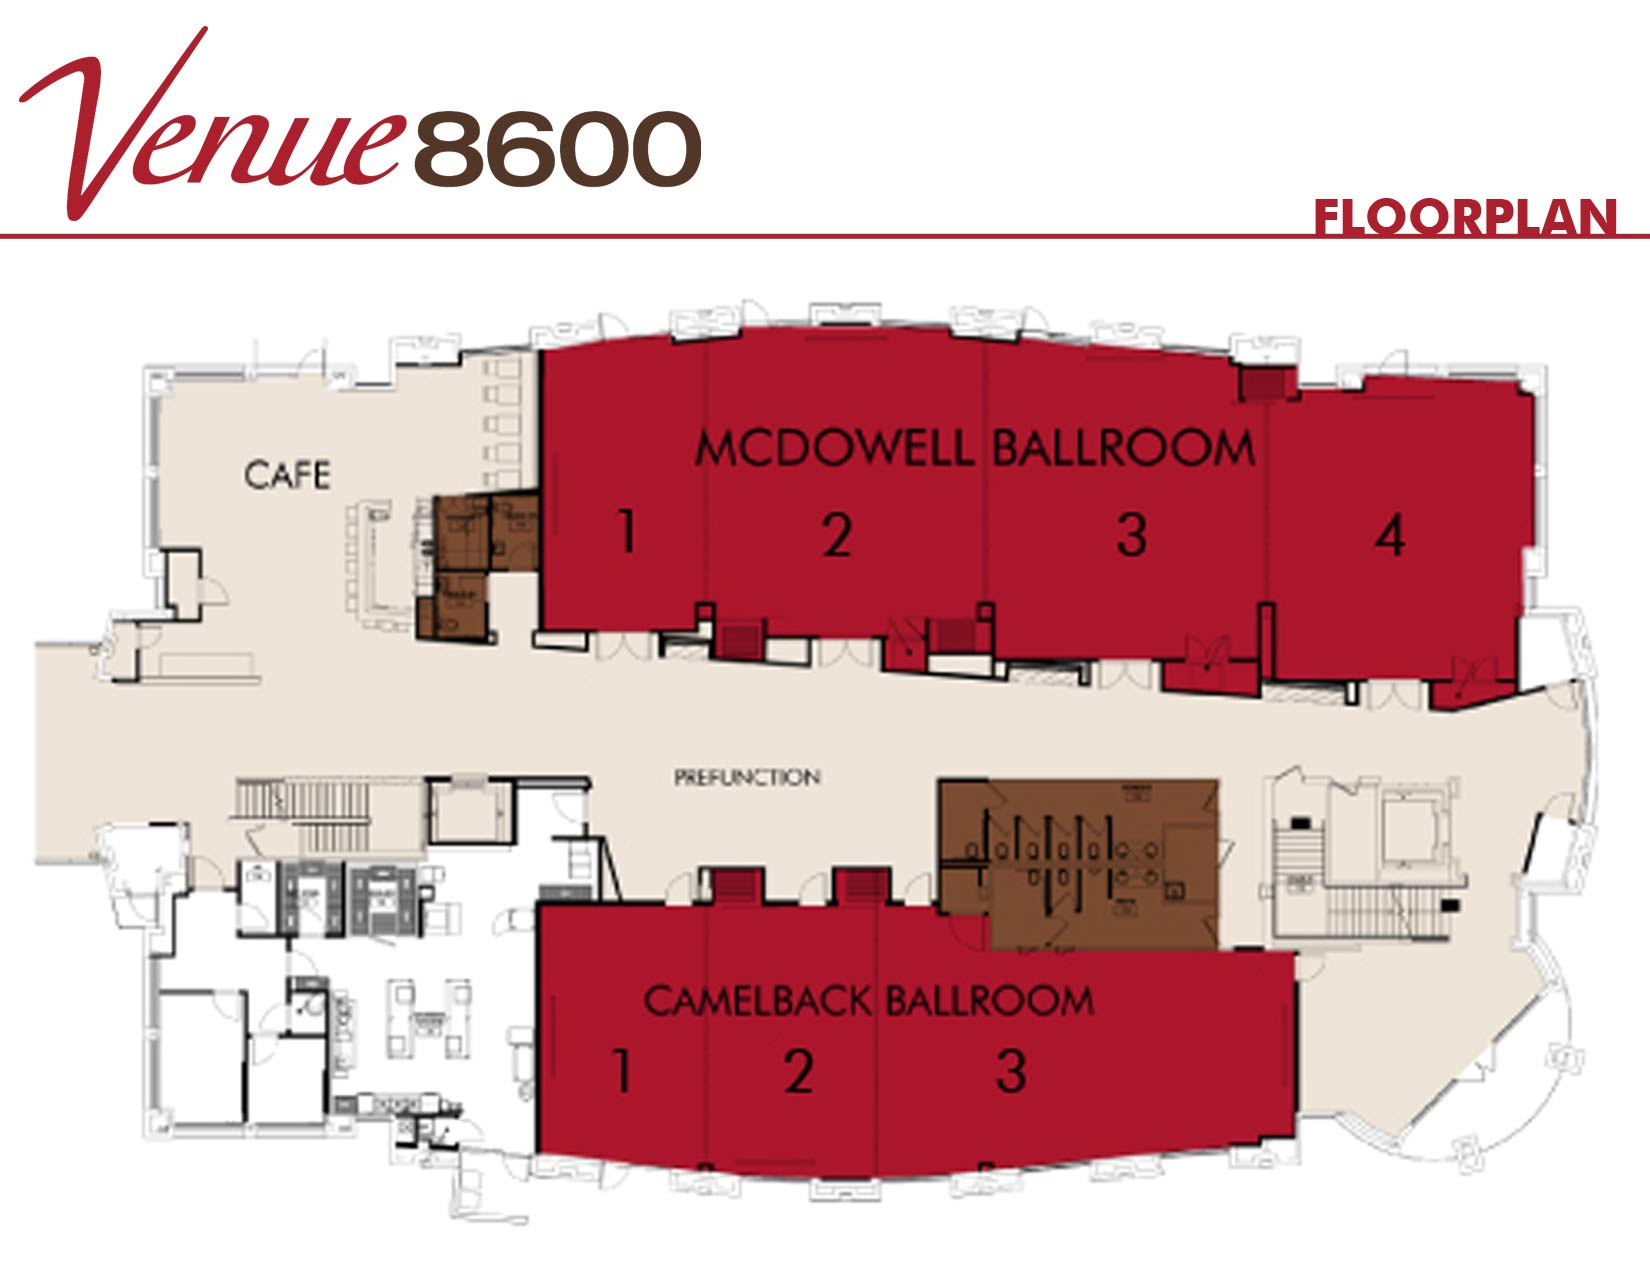 Venue 8600 Floorplan scottsdale az